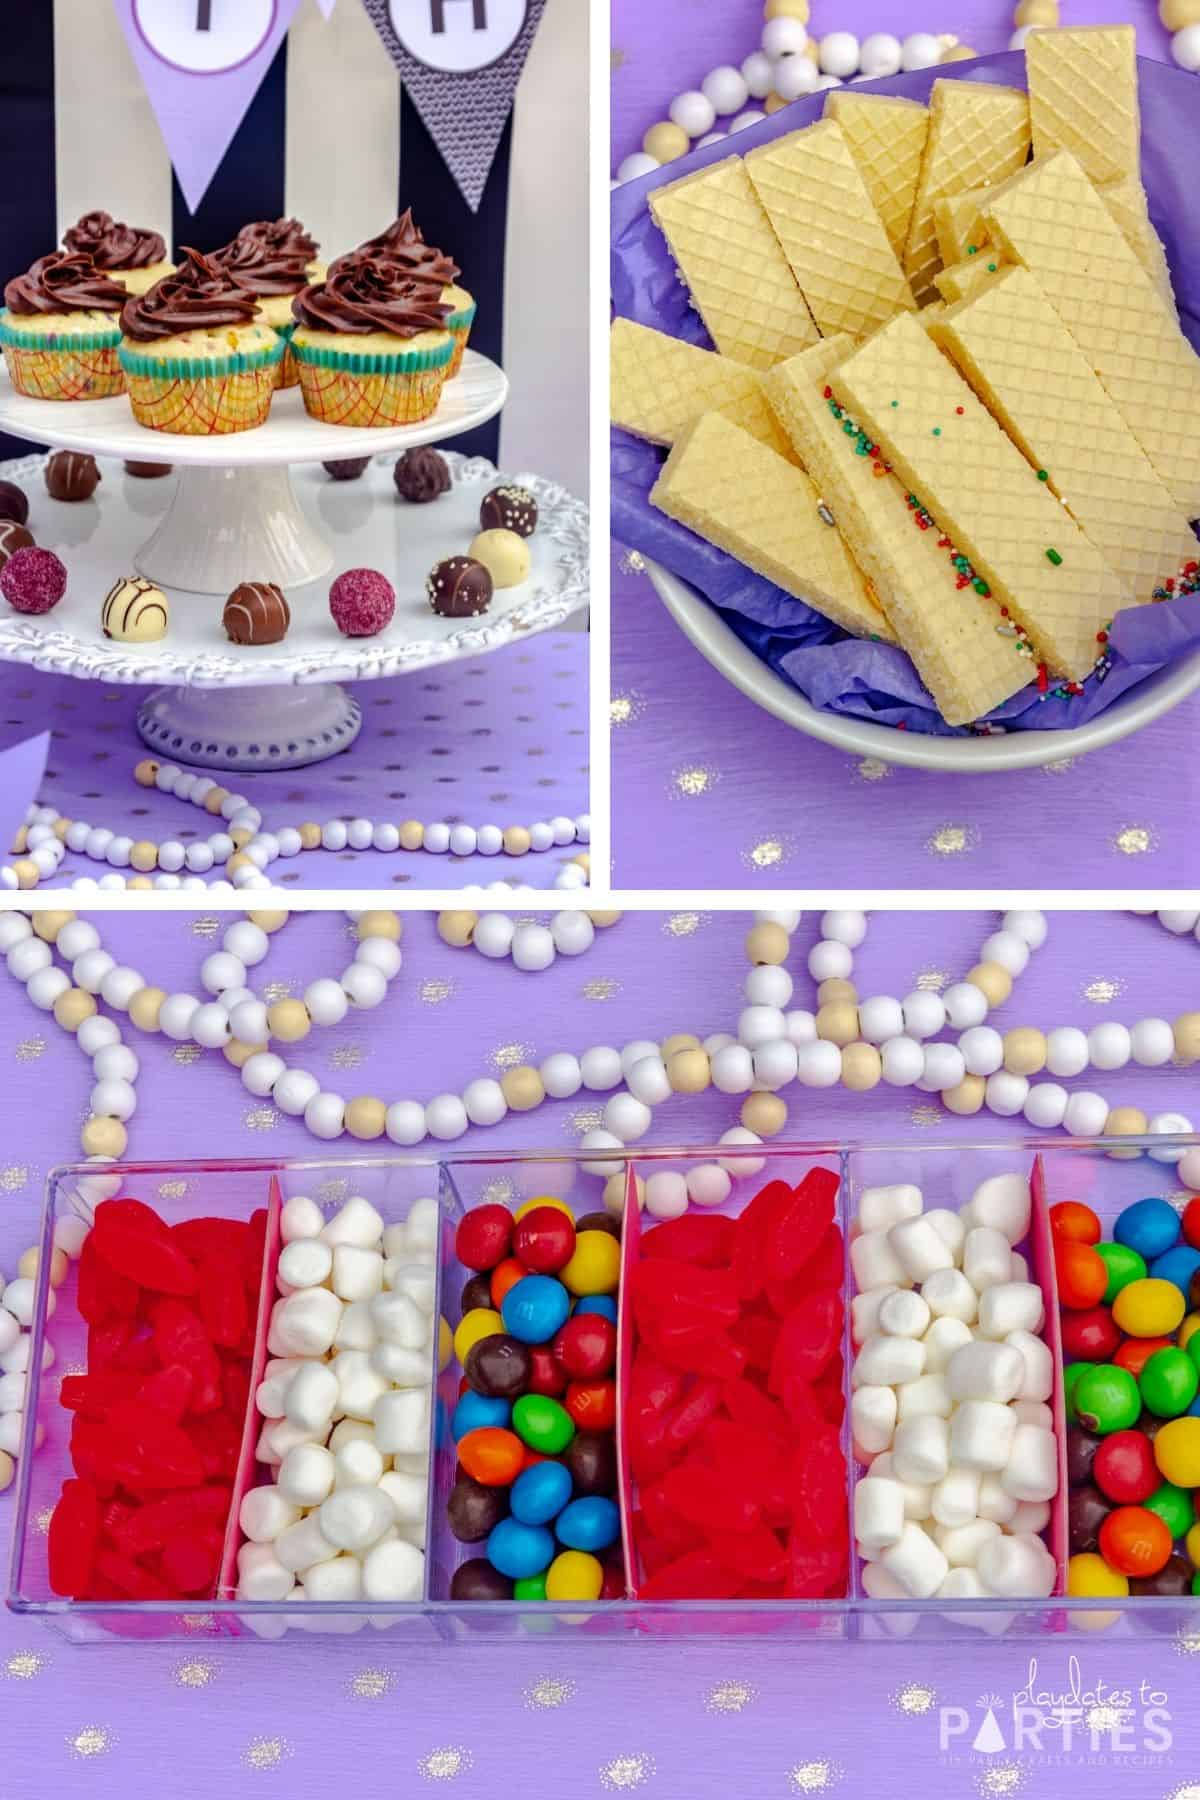 collage of sweet treats for a birthday party including swedish fish, mini marshmallows, M&Ms, chocolate truffles, sugar wafer cookies, and homemade cupcakes